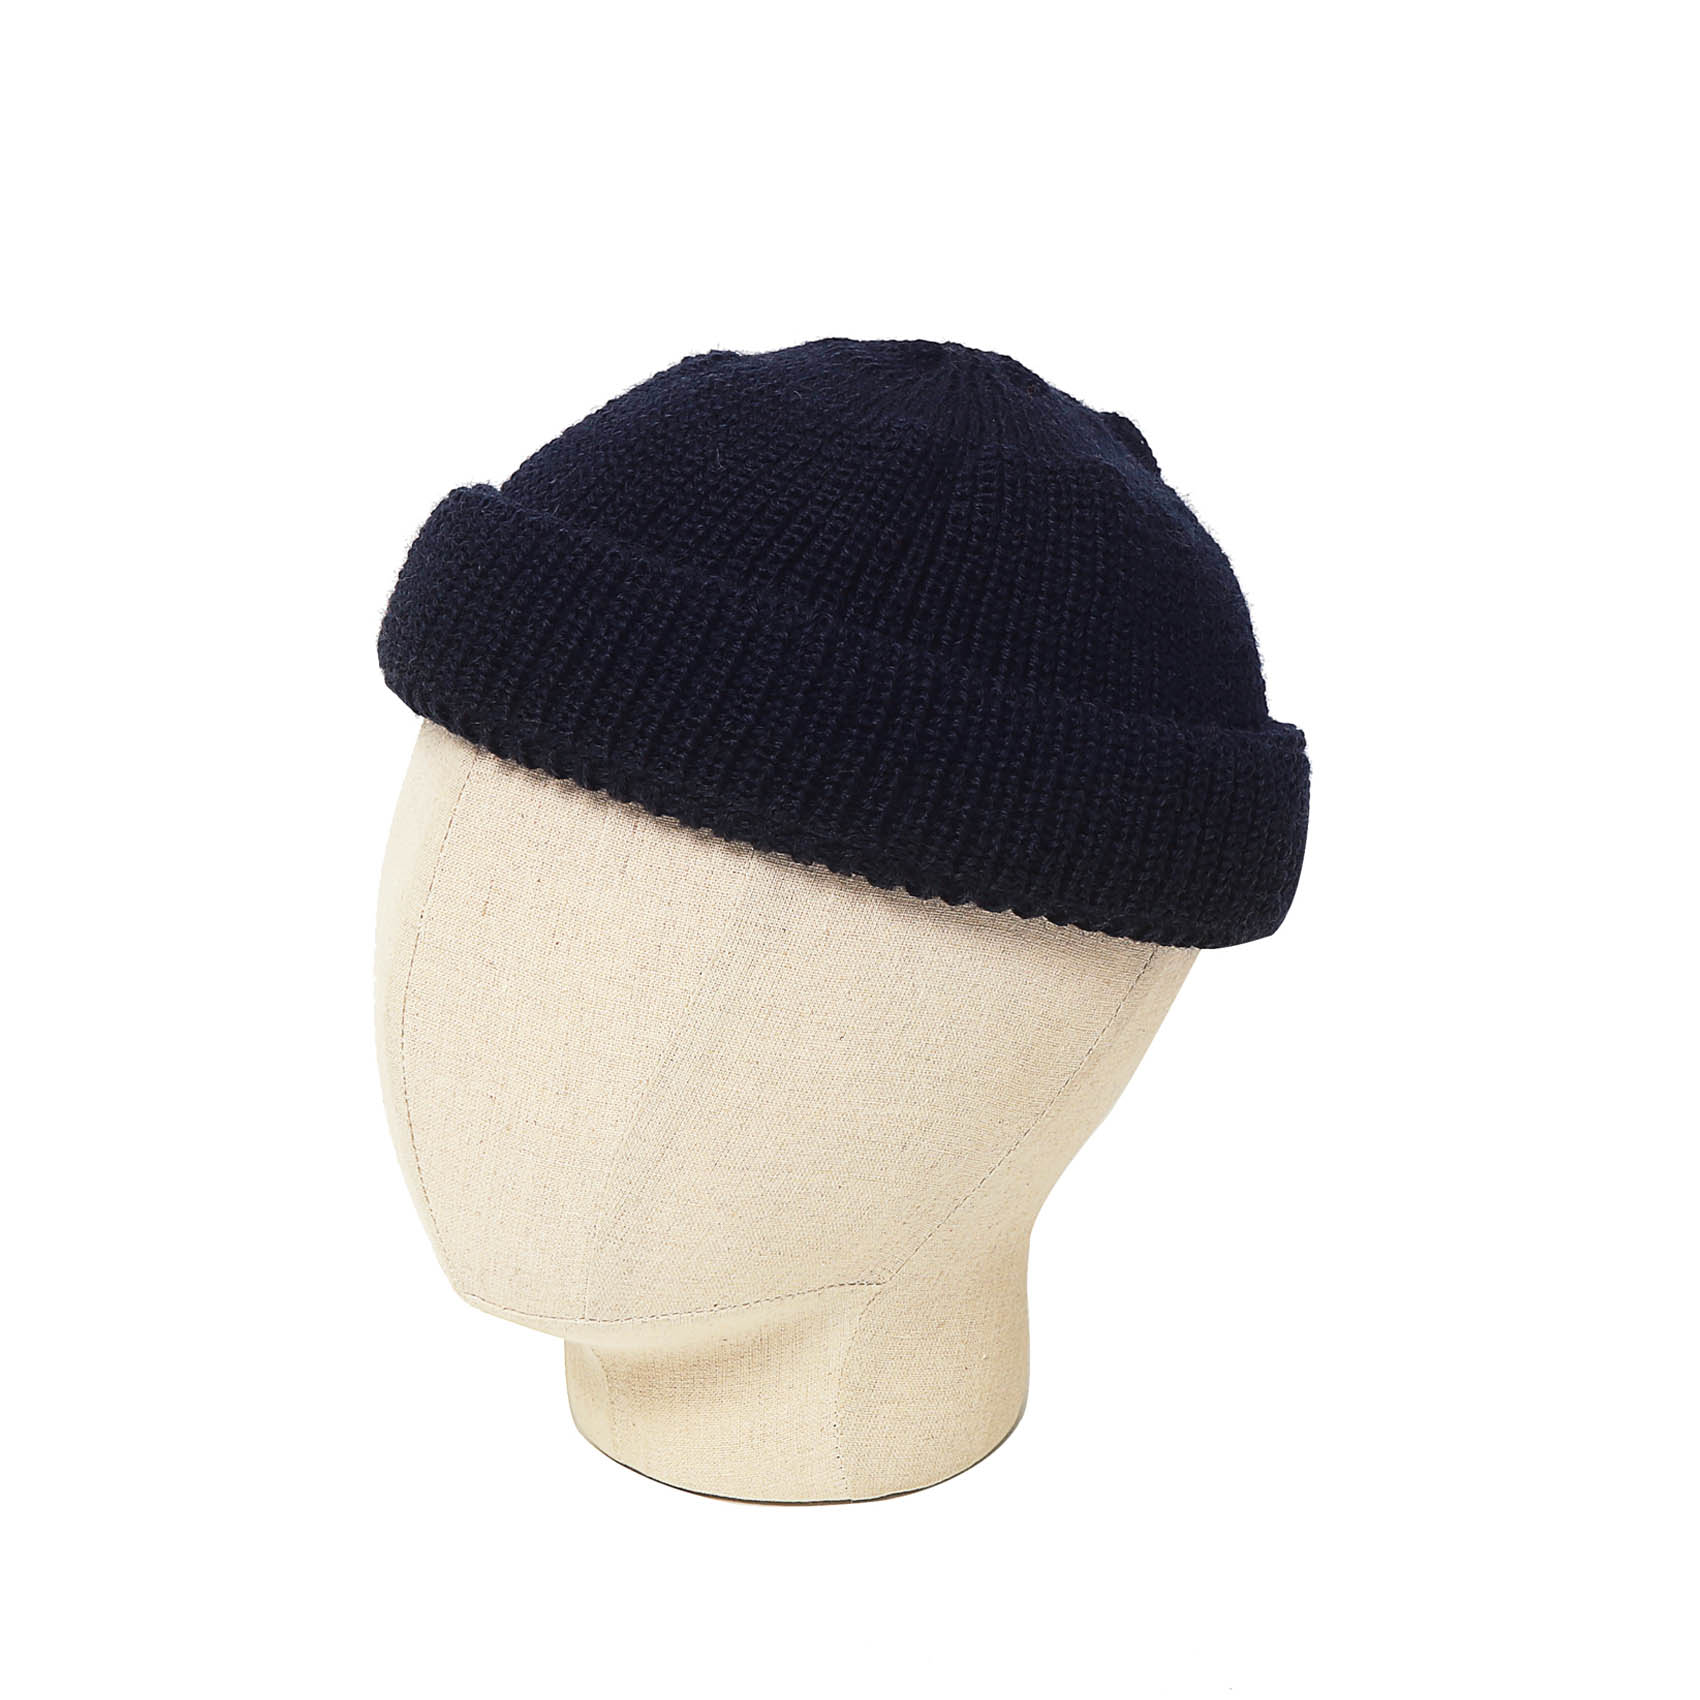 DECK HAT - NAVY